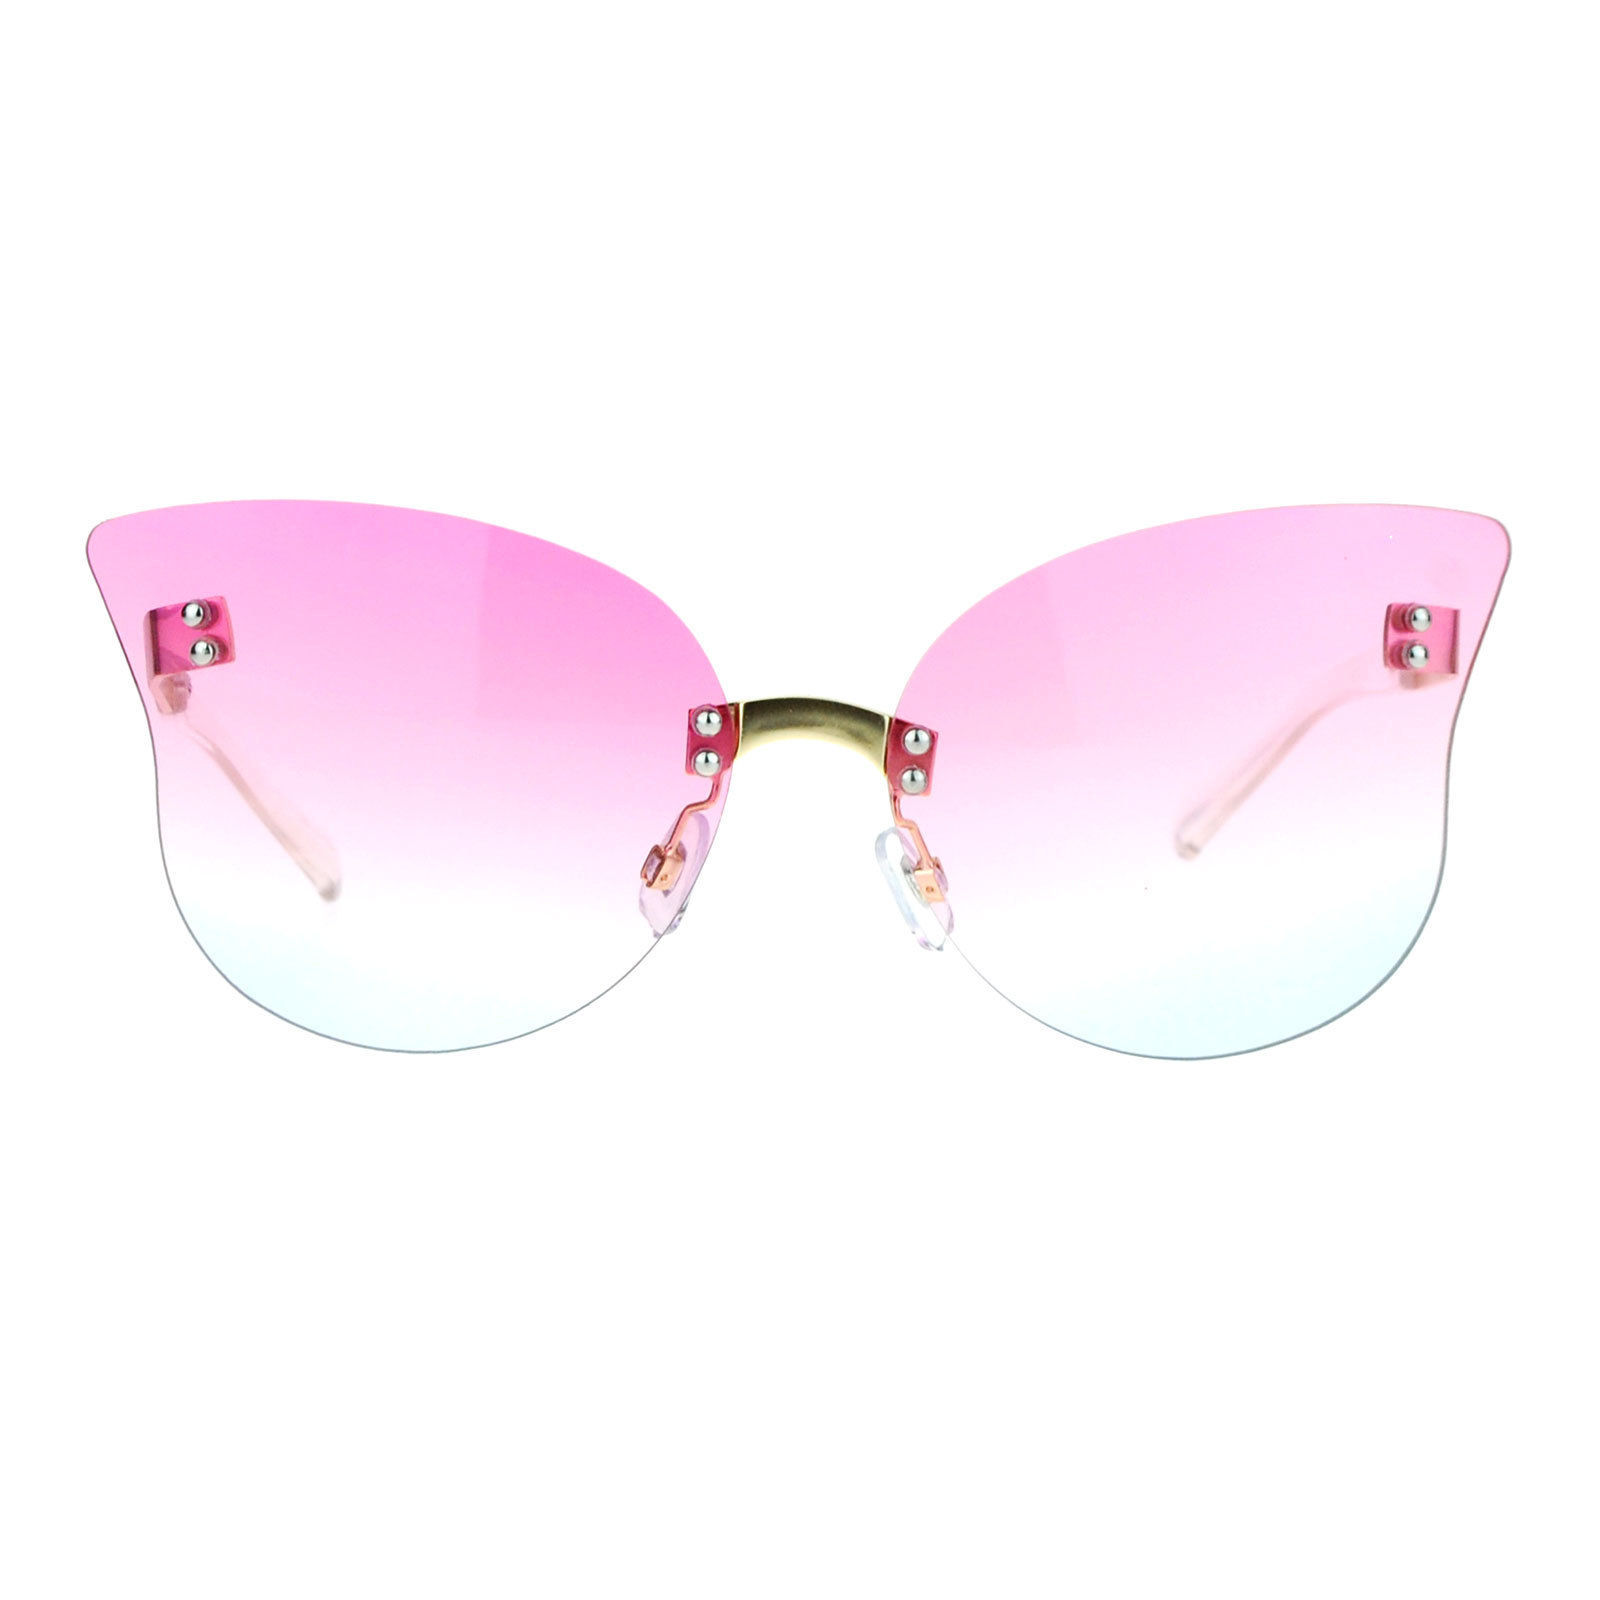 Rimless Butterfly Glasses : Womens Rimless Butterfly Sunglasses Beautiful Ombre ...